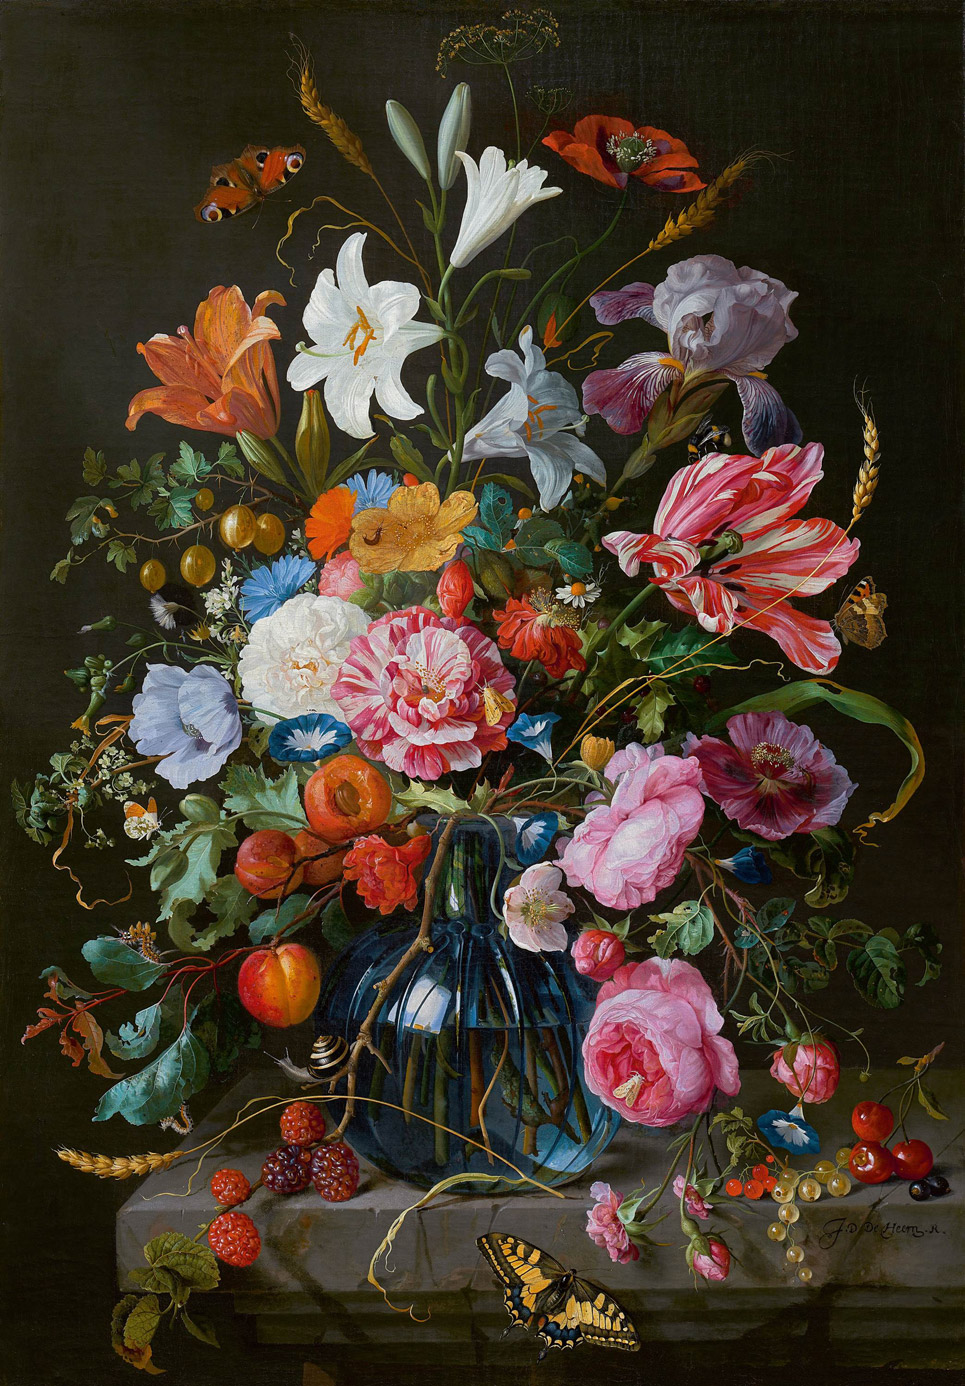 Still life with flowers in a glass vase, Jan Davidsz. de Heem